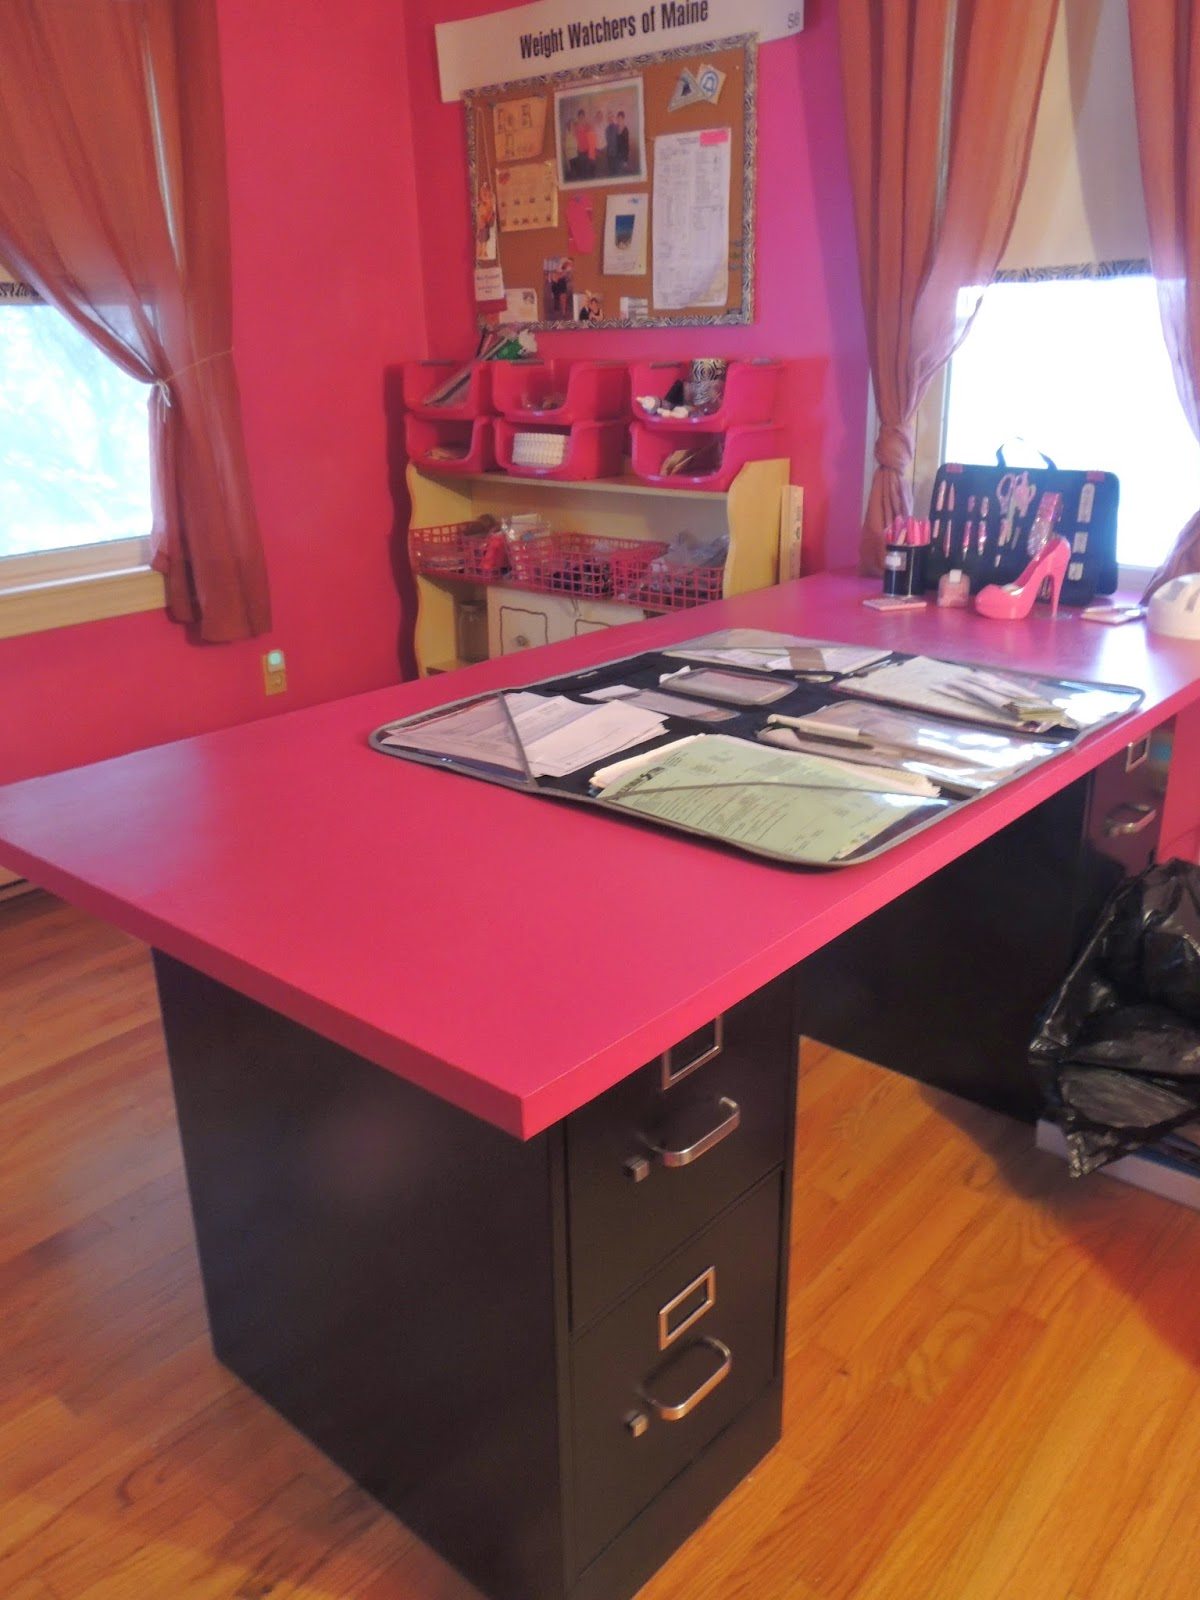 22 Applegate Lane: DIY Craft Room on a Budget